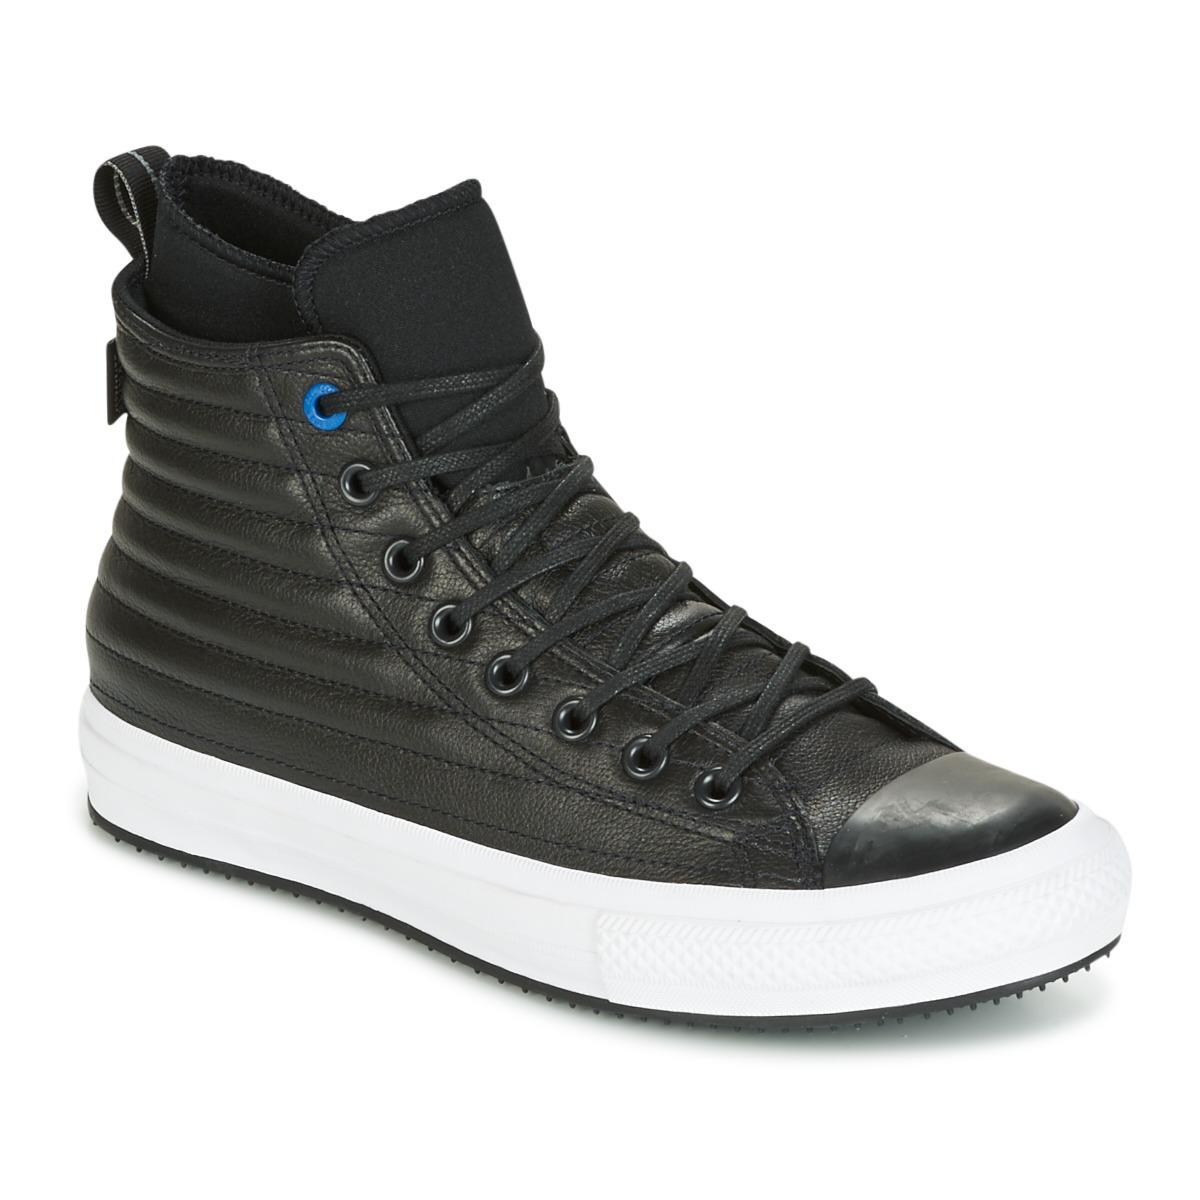 Converse - Chuck Taylor Wp Boot Quilted Leather Hi Black blue Jay white  Shoes. View fullscreen 8f8233fa9